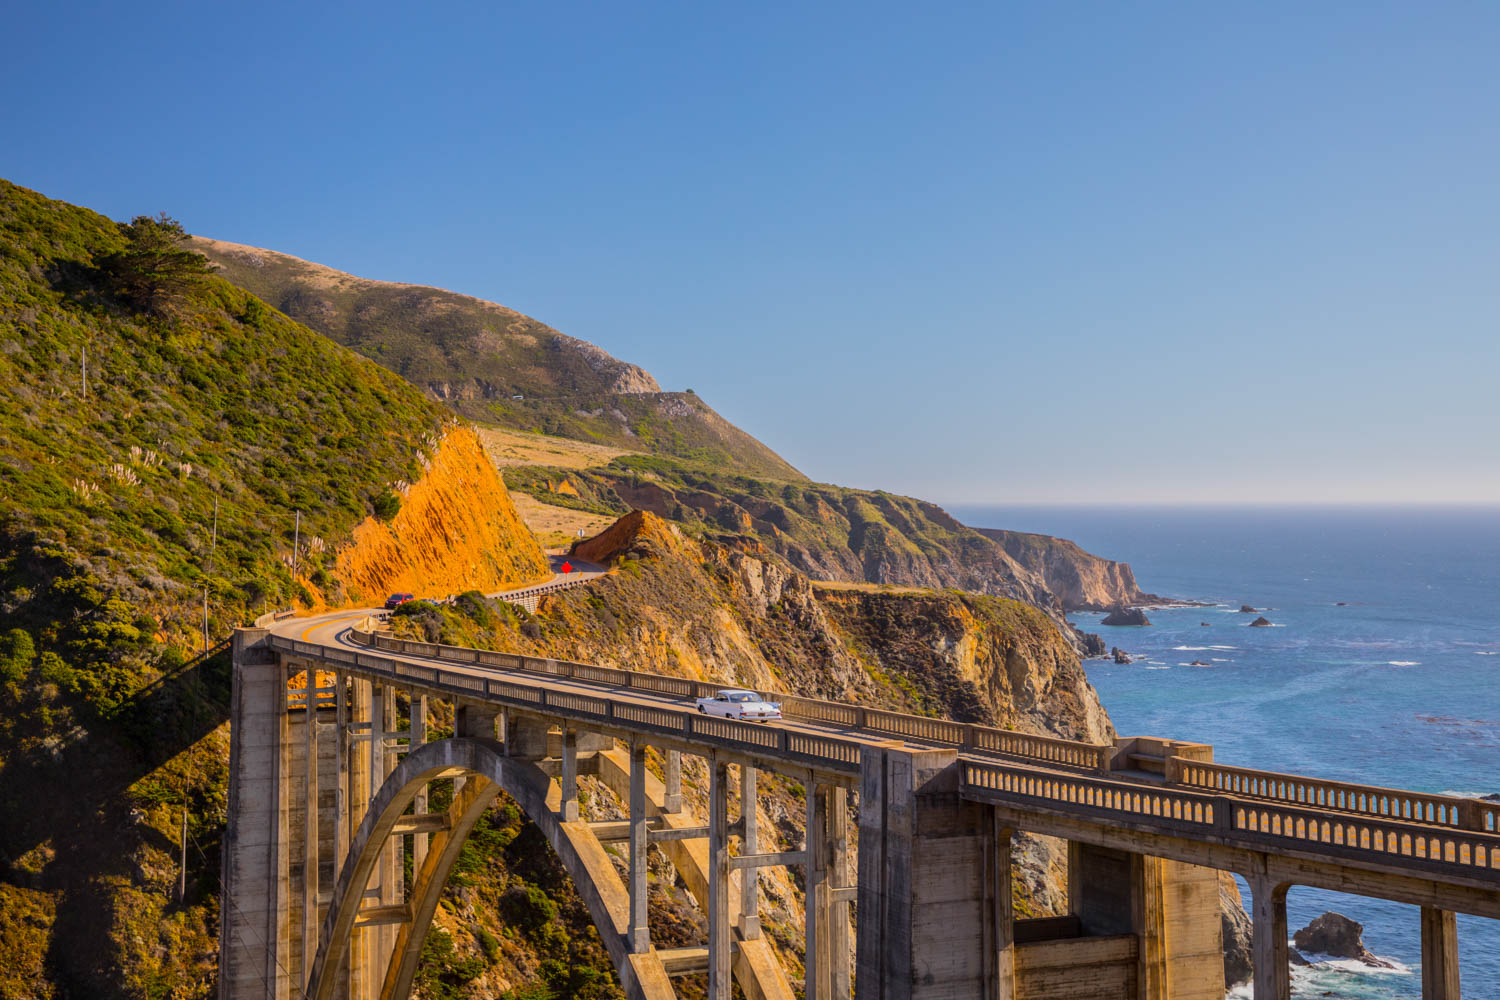 Crossing the famed Bixby Bridge on California's Highway 1, the old Newport aims for the horizon.